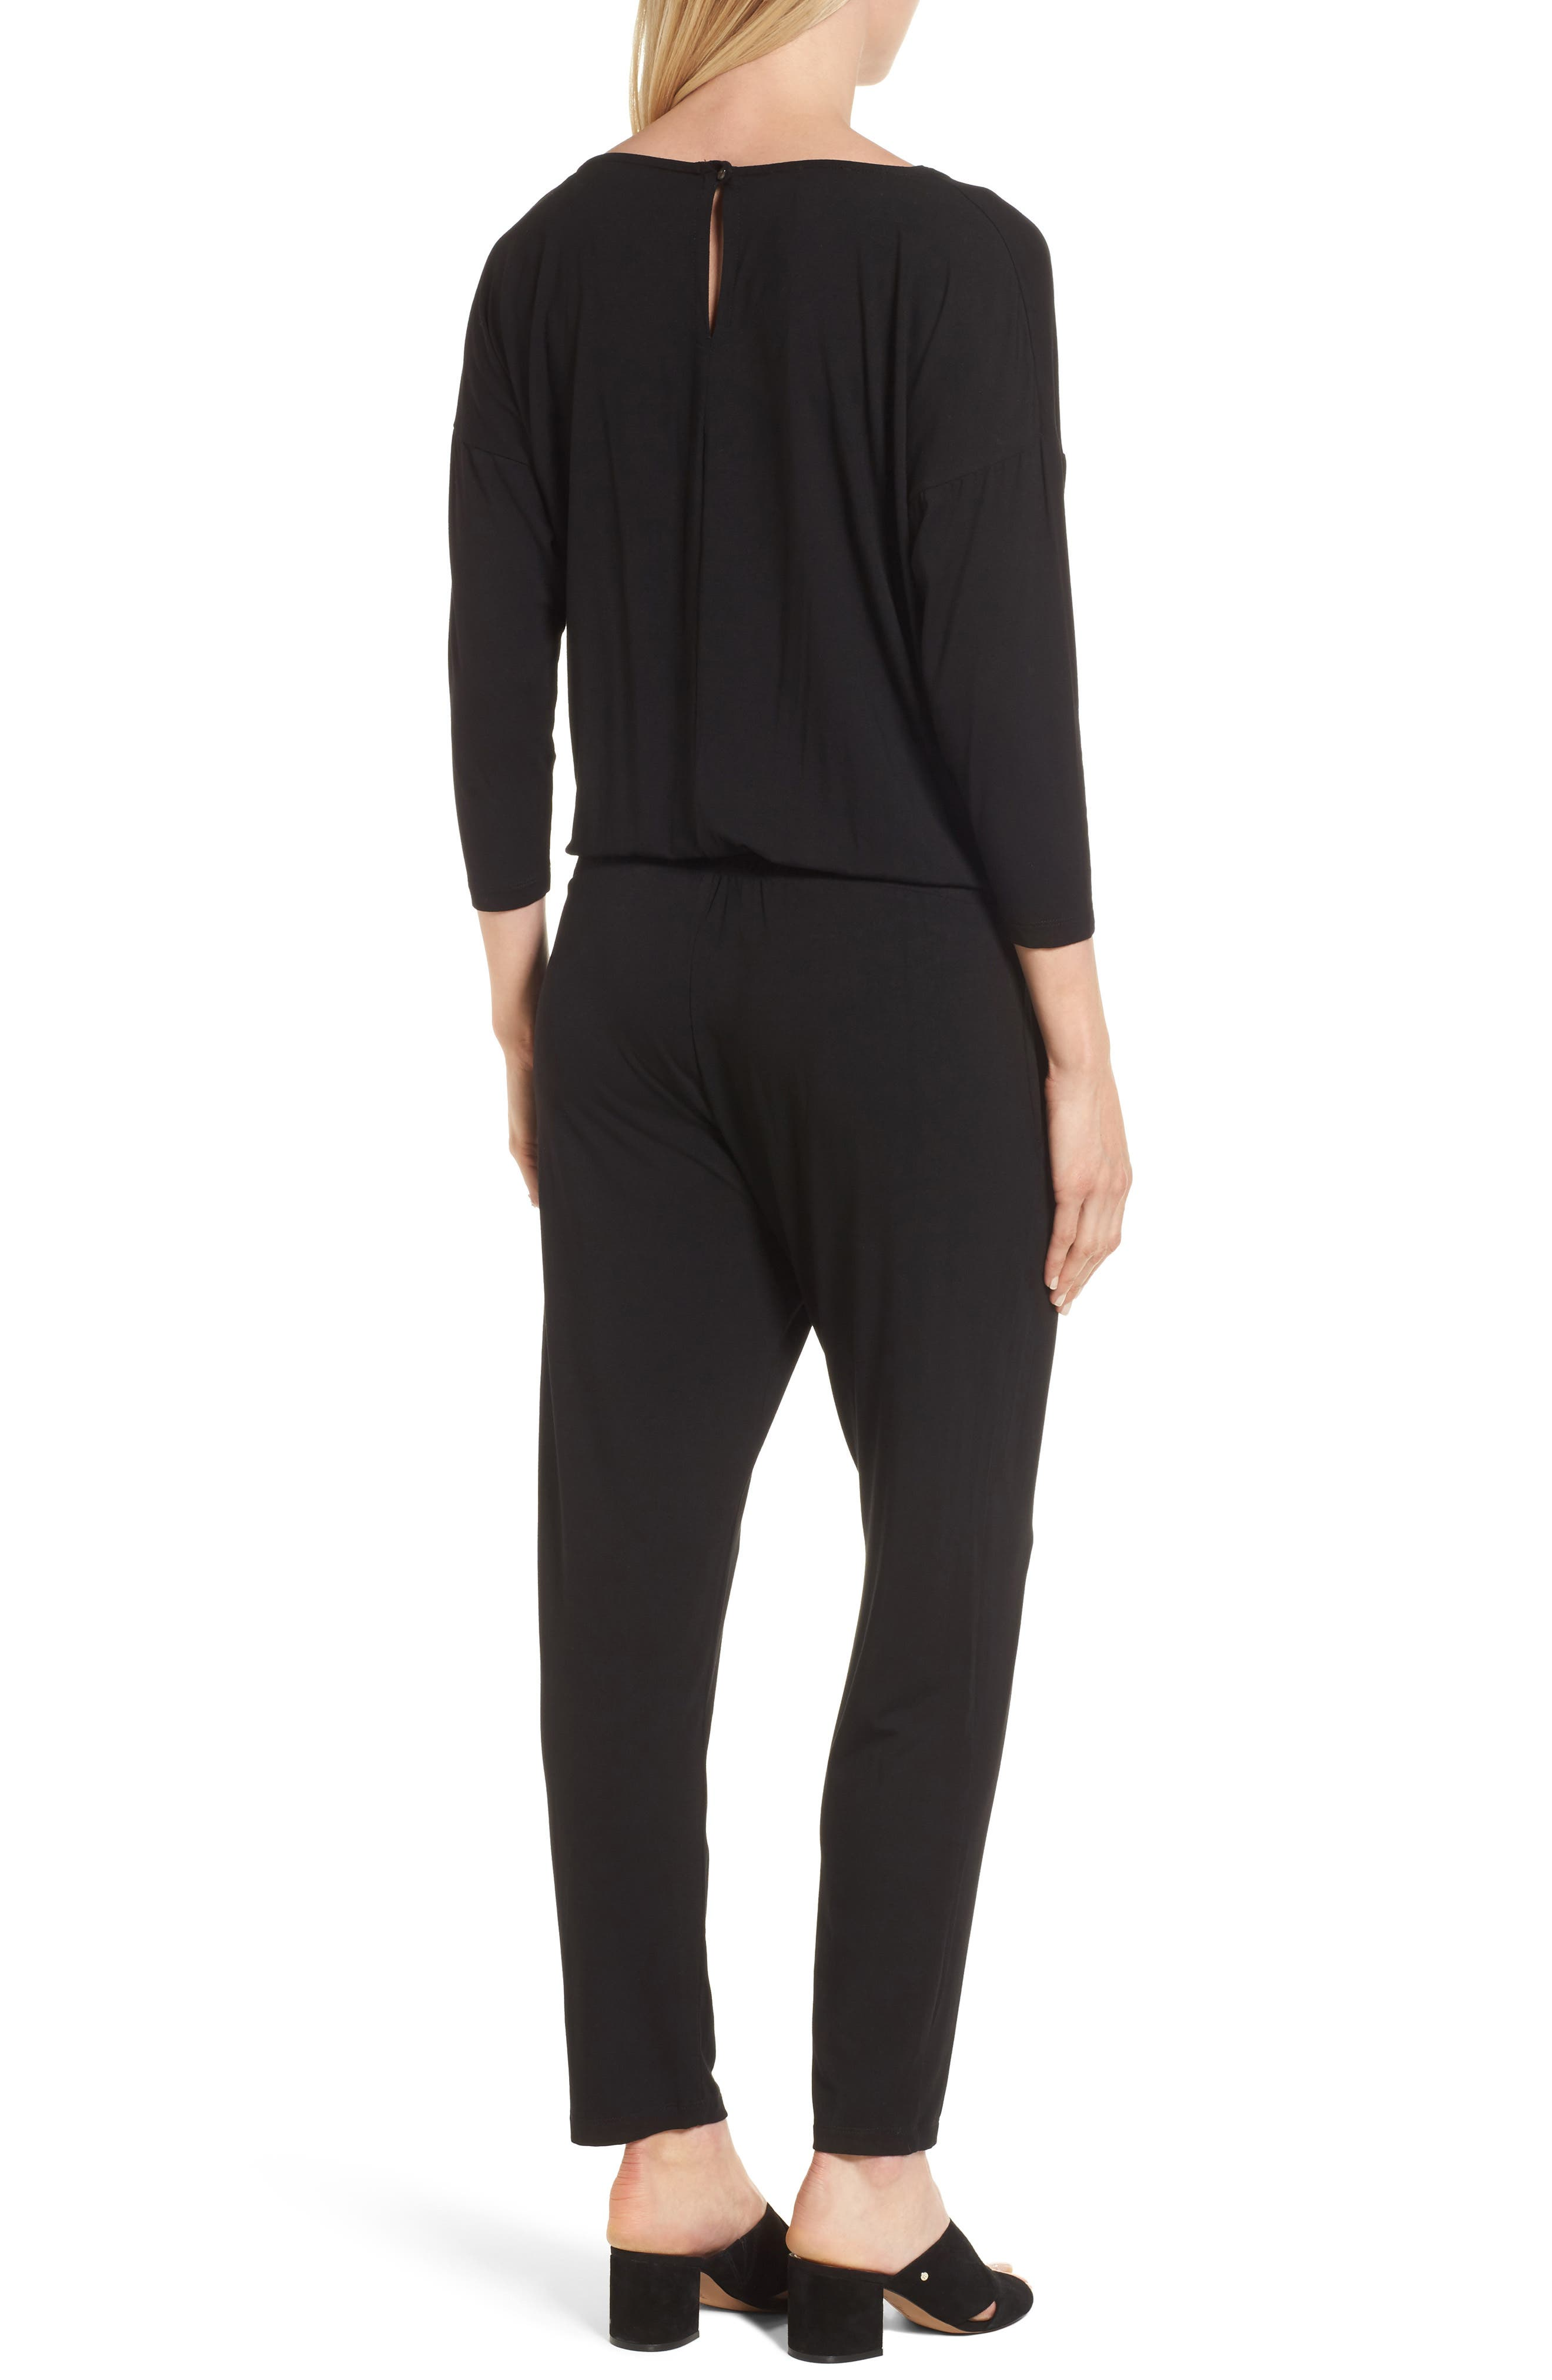 Chloe Maternity Jumpsuit,                             Alternate thumbnail 2, color,                             Caviar Black